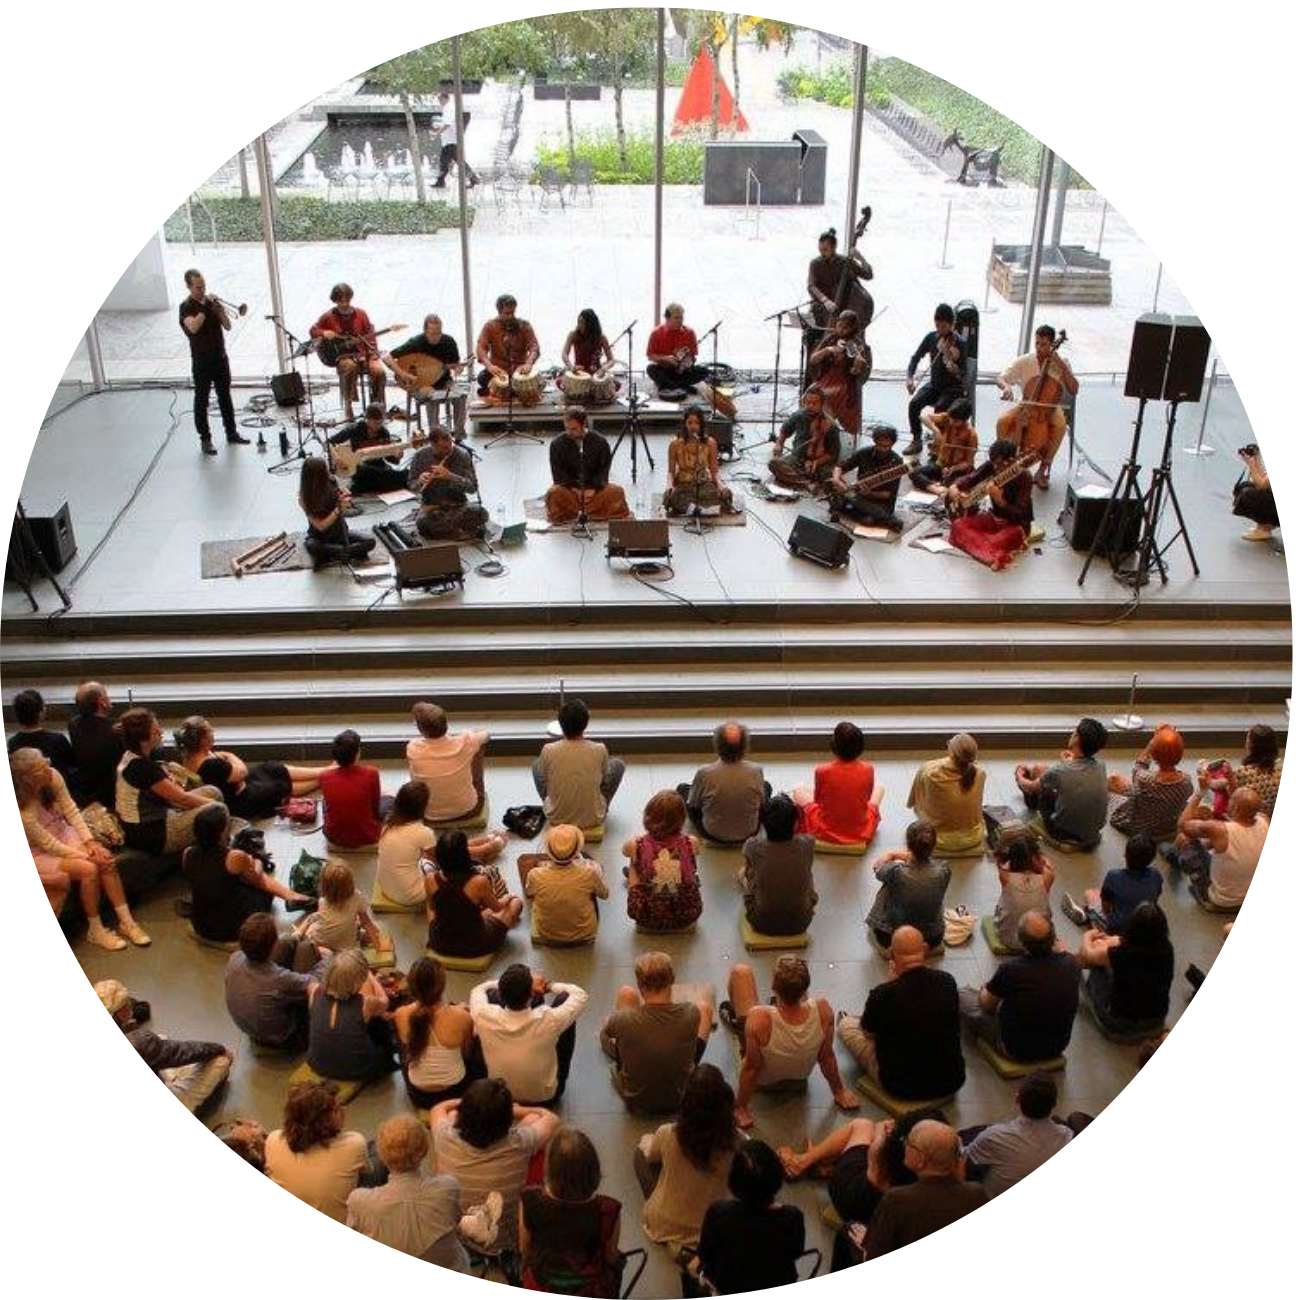 Group of 19 Musicians on a Stage at MoMA performing to a crowd of people sitting on the floor